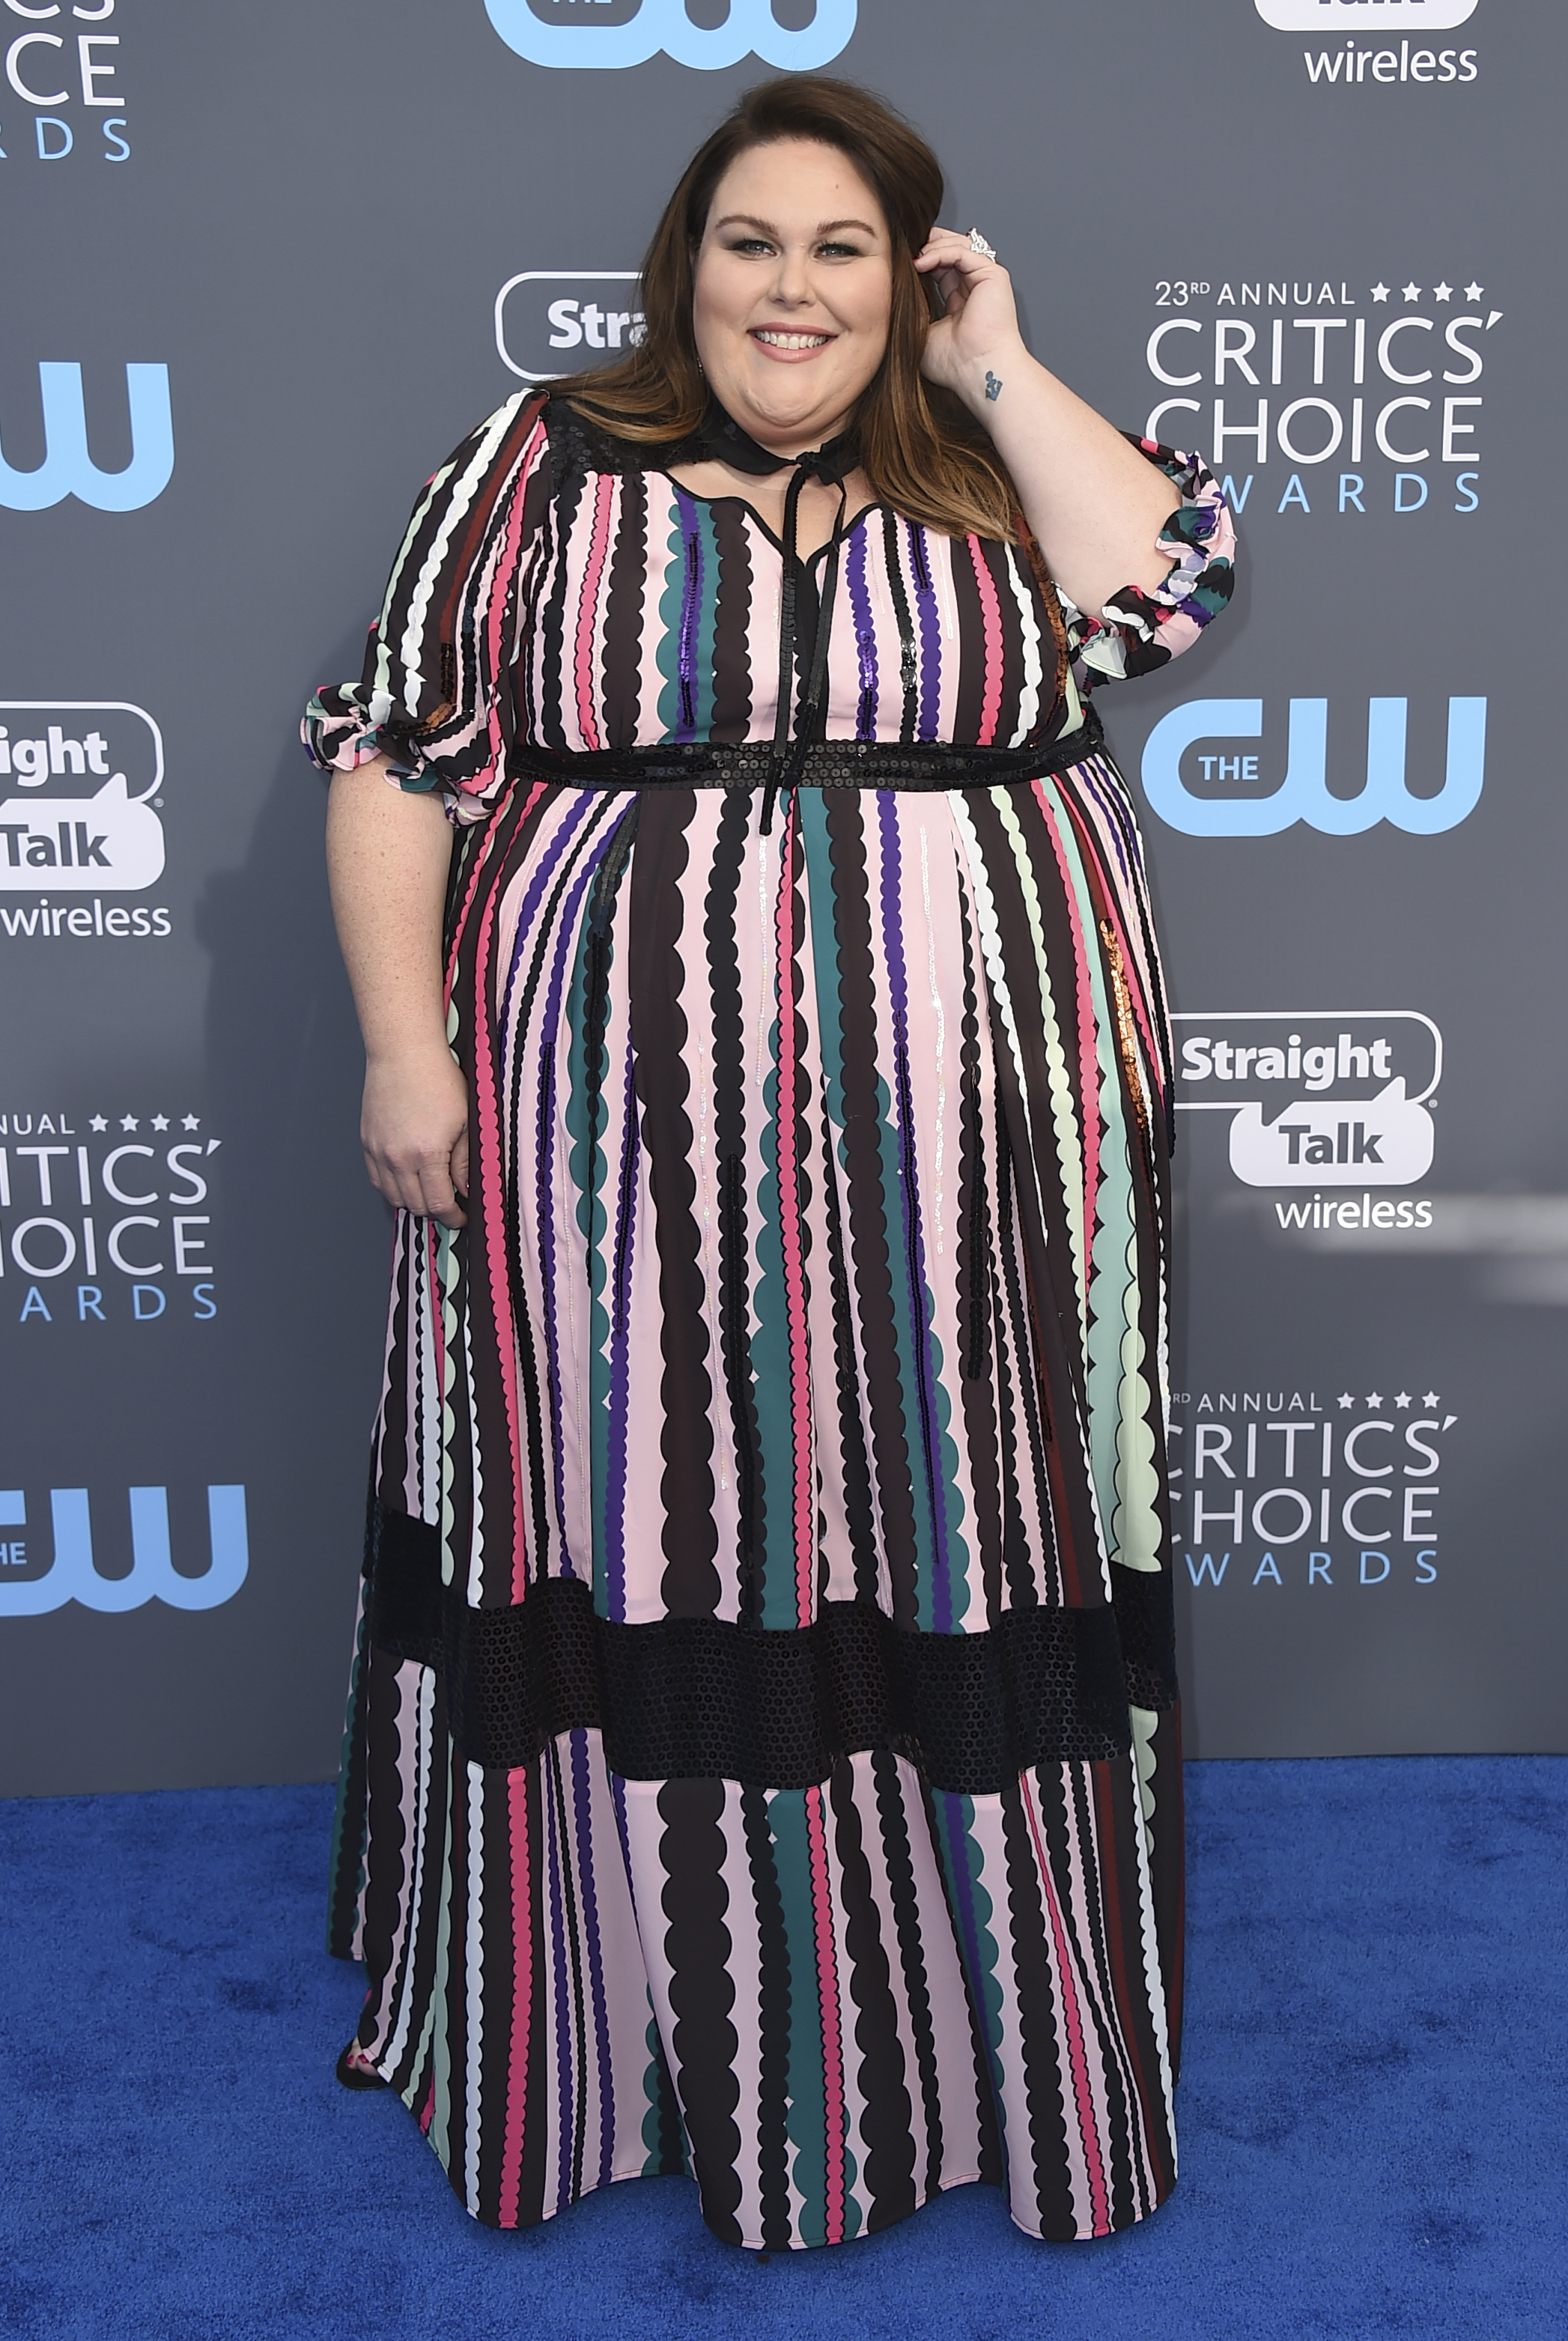 <div class='meta'><div class='origin-logo' data-origin='AP'></div><span class='caption-text' data-credit='Jordan Strauss/Invision/AP'>Chrissy Metz arrives at the 23rd annual Critics' Choice Awards at the Barker Hangar on Thursday, Jan. 11, 2018, in Santa Monica, Calif.</span></div>